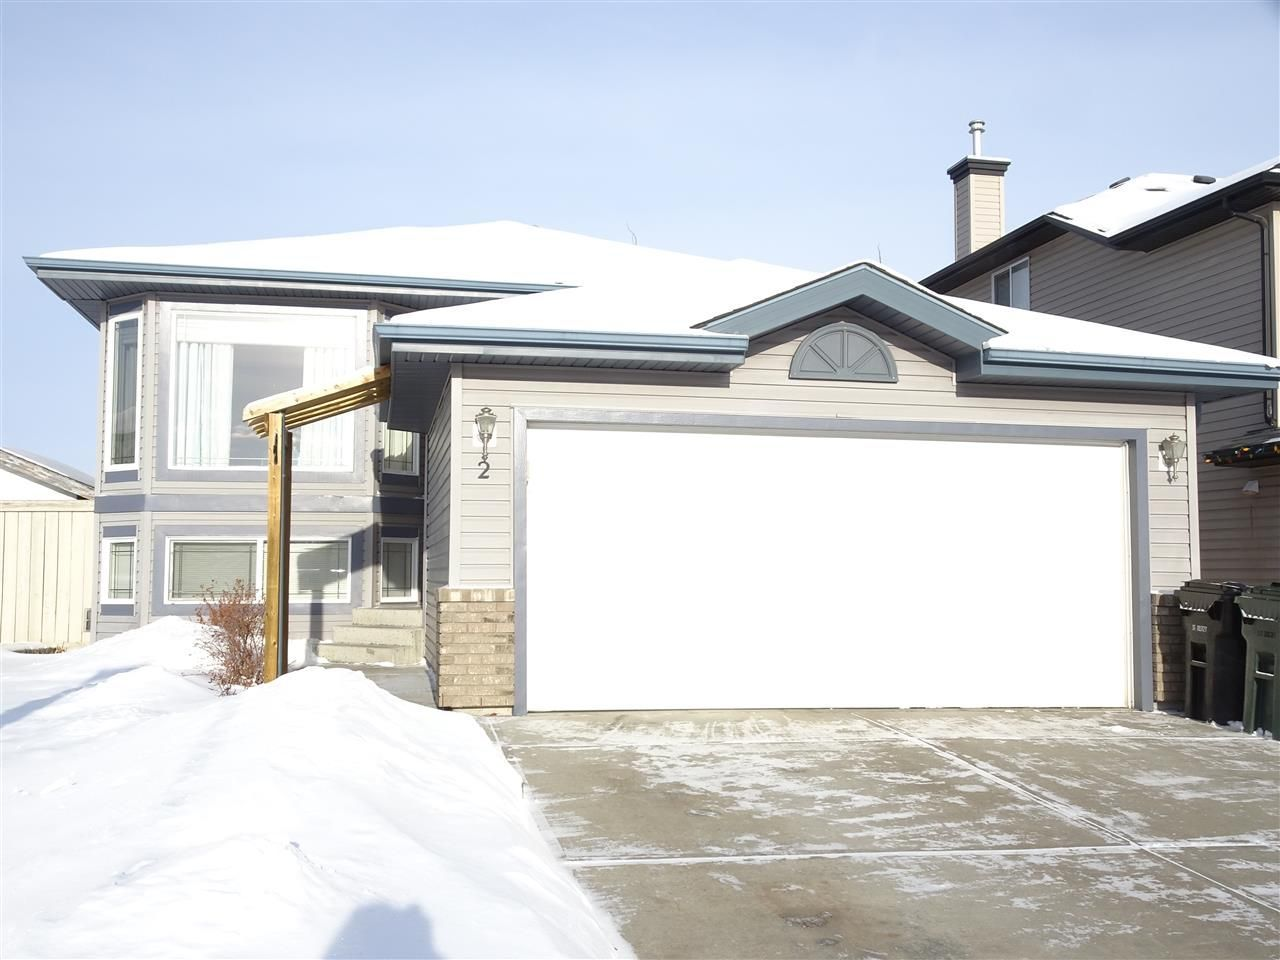 Main Photo: 2 LANDON Crescent: Spruce Grove House for sale : MLS®# E4140036